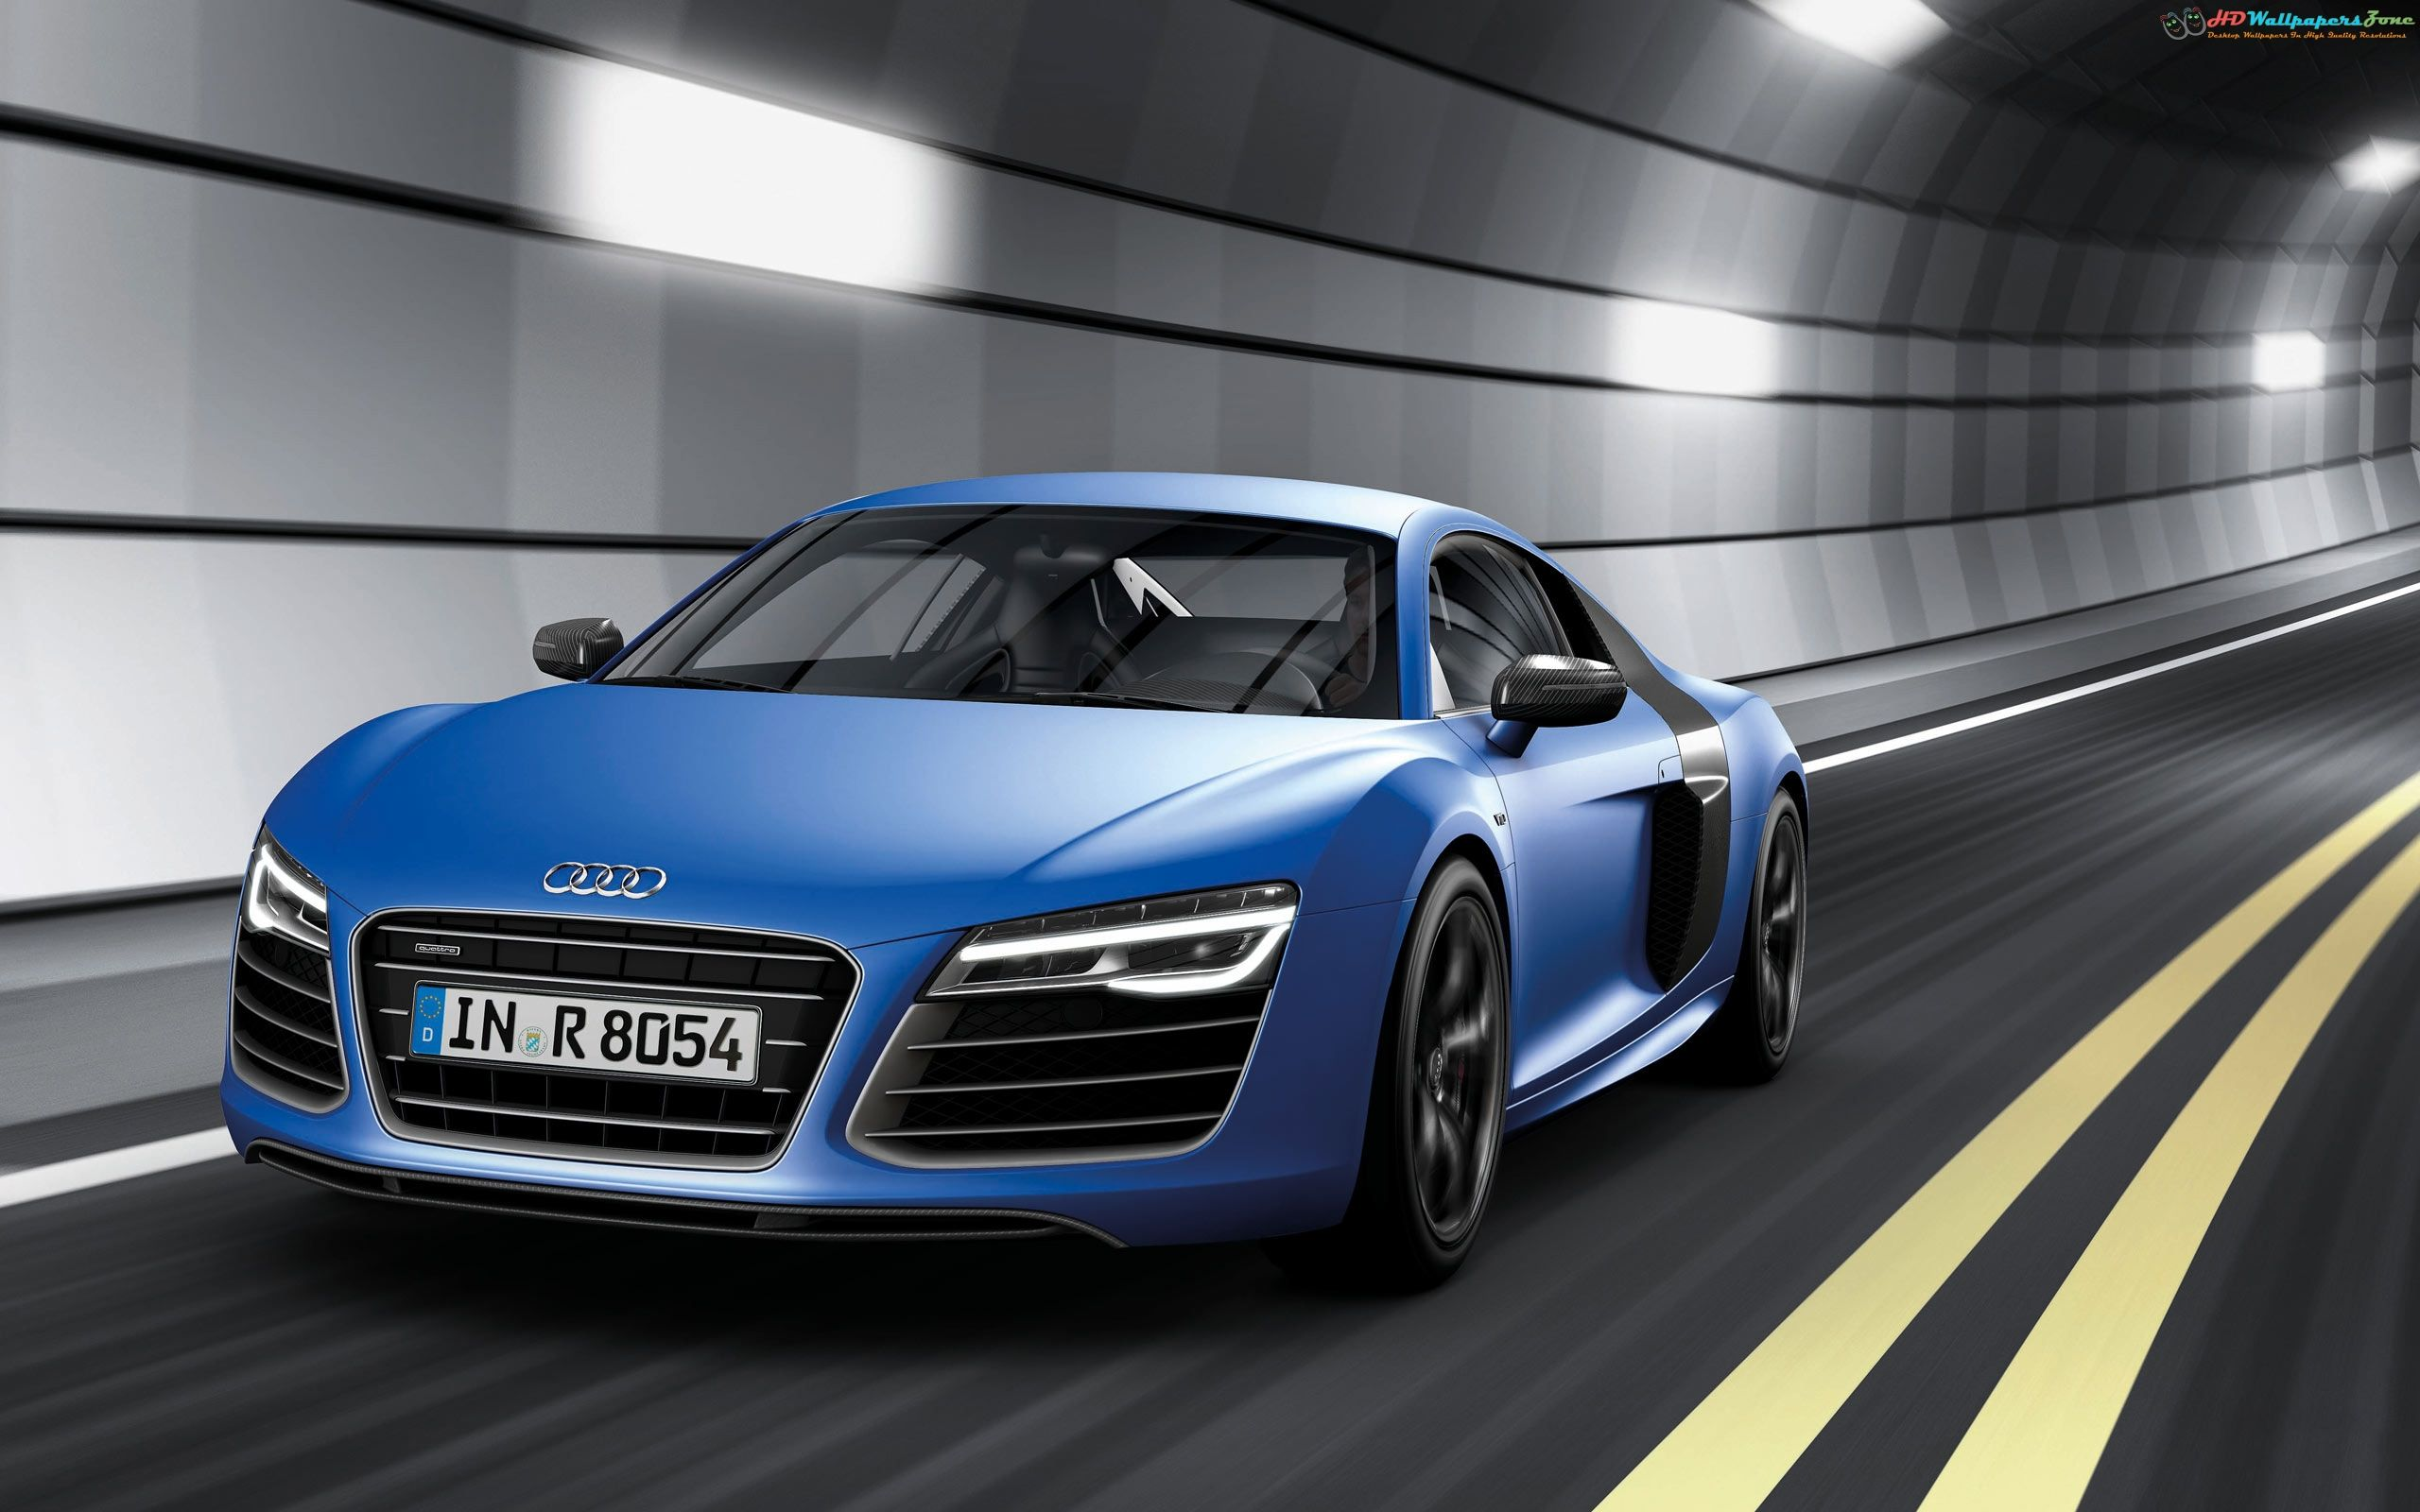 Audi r8 1509 hd desktop car wallpaper in hd and widescreen resolutions http